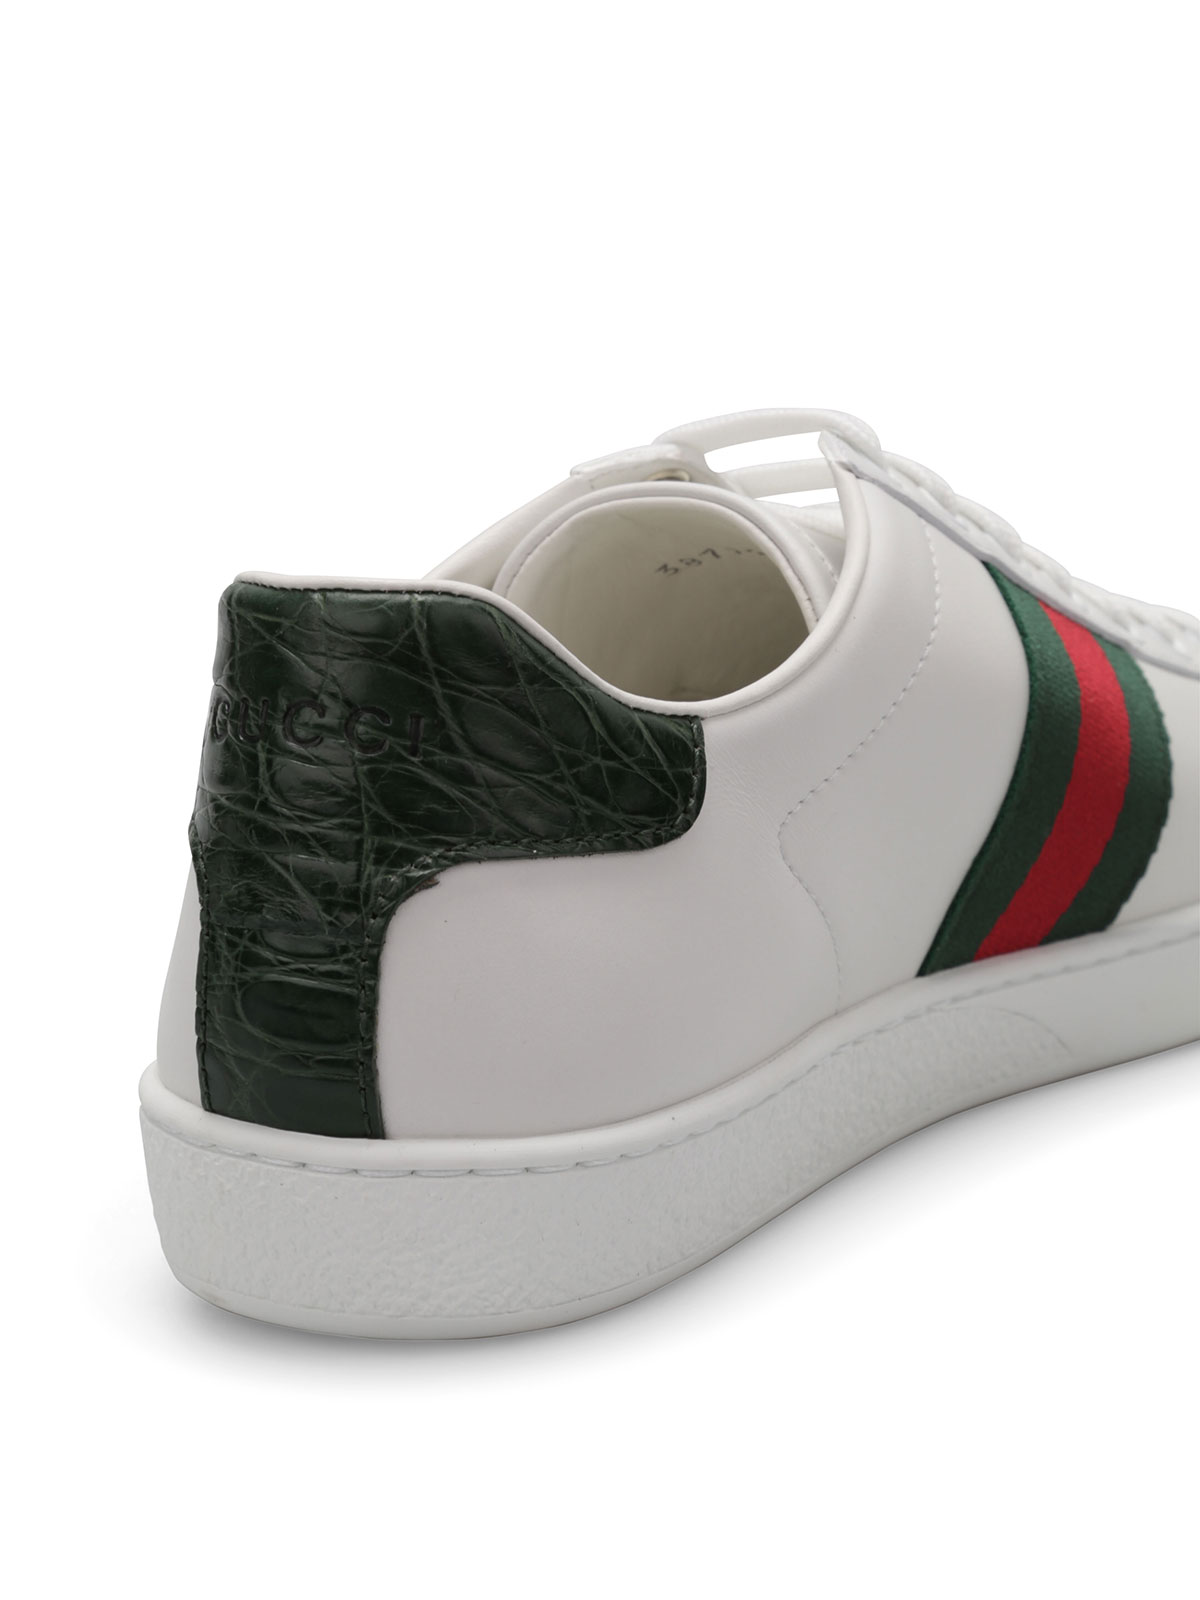 Gucci Crocodile Sneakers Trainers 387993 A3830 9071